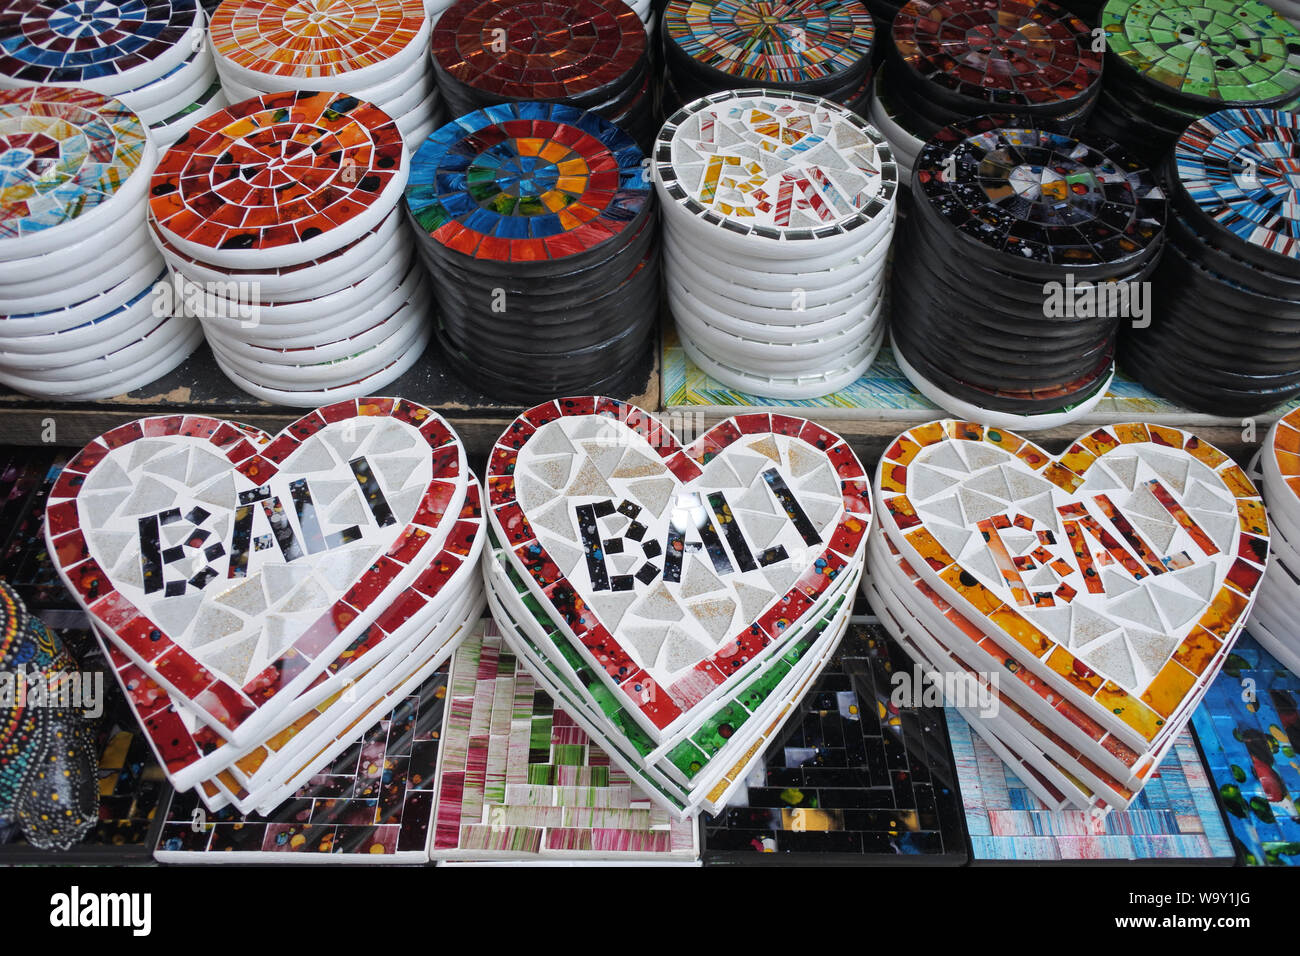 Placemats in a shap of a heart with the name Bali in souvenirs shop in Ubud market Bali Indonesia. Stock Photo